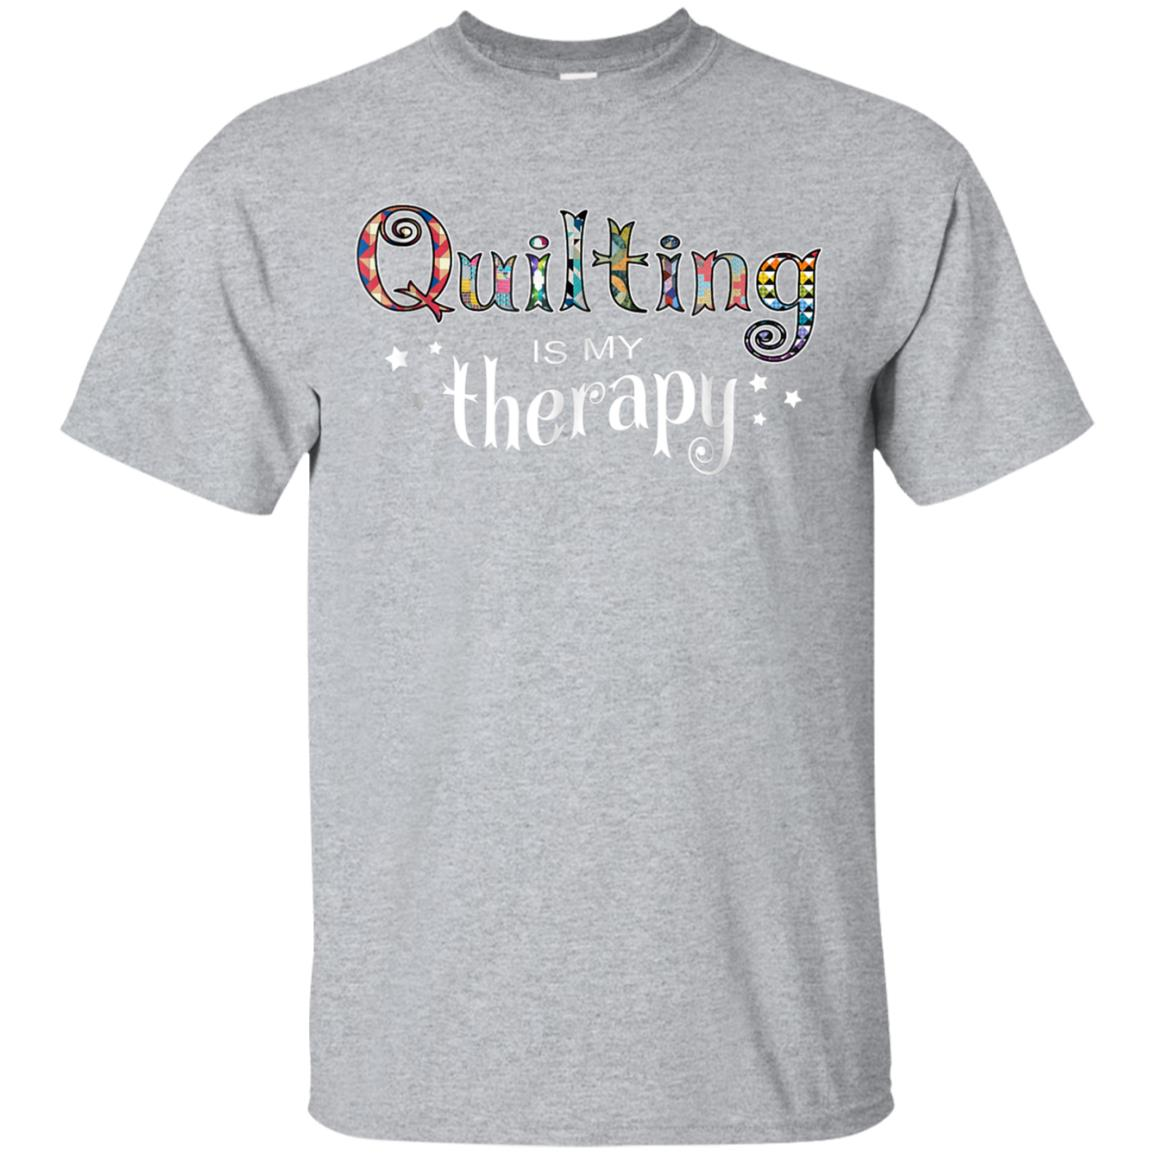 Funny Quilting Is My Therapy T-shirt Gift Novelty 99promocode